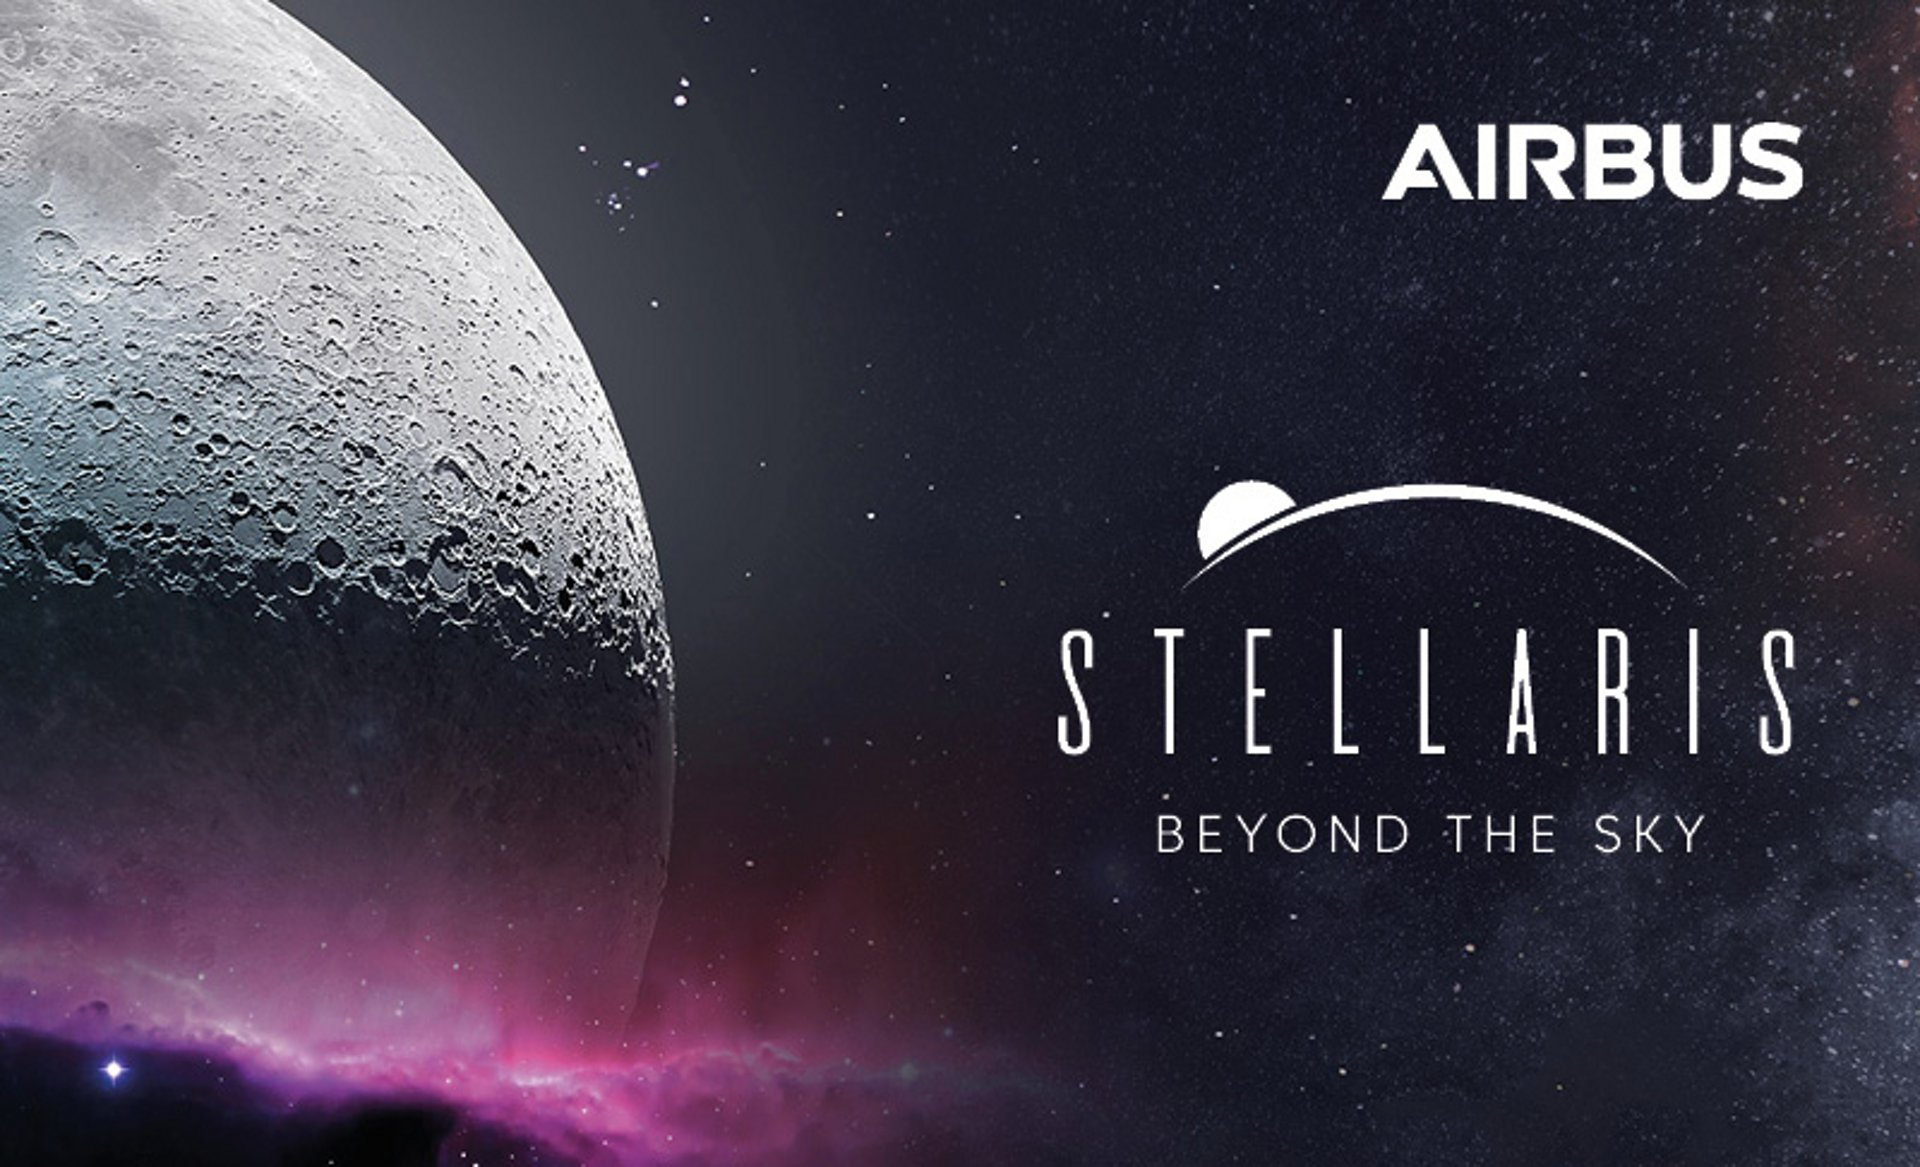 Stellaris: Bringing Space closer to Earth